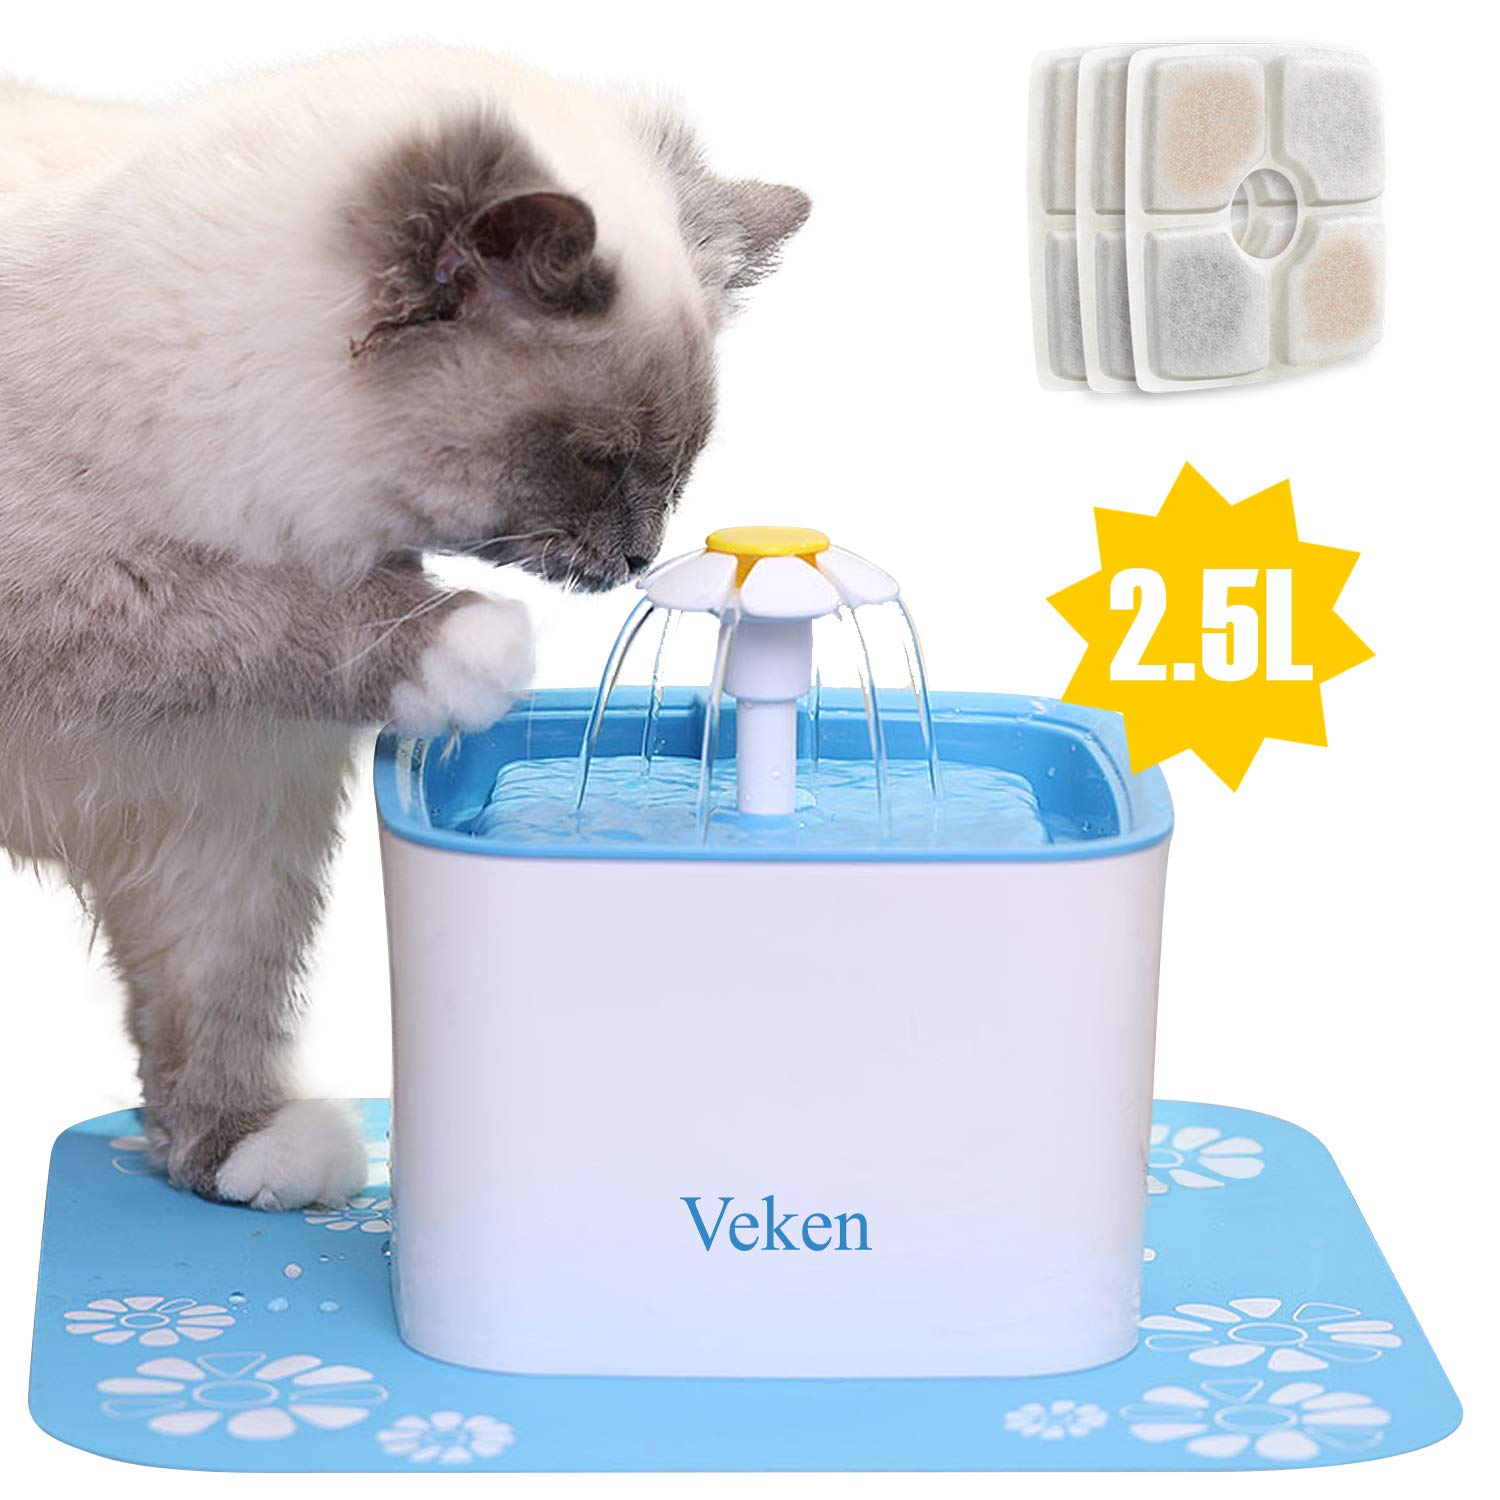 Veken Pet Fountain, 84oz/2.5L Automatic Cat Water Fountain Dog Water Dispenser with 3 Replacement Filters & 1 Silicone Mat for Cats, Dogs, Multiple Pets, Blue by Veken